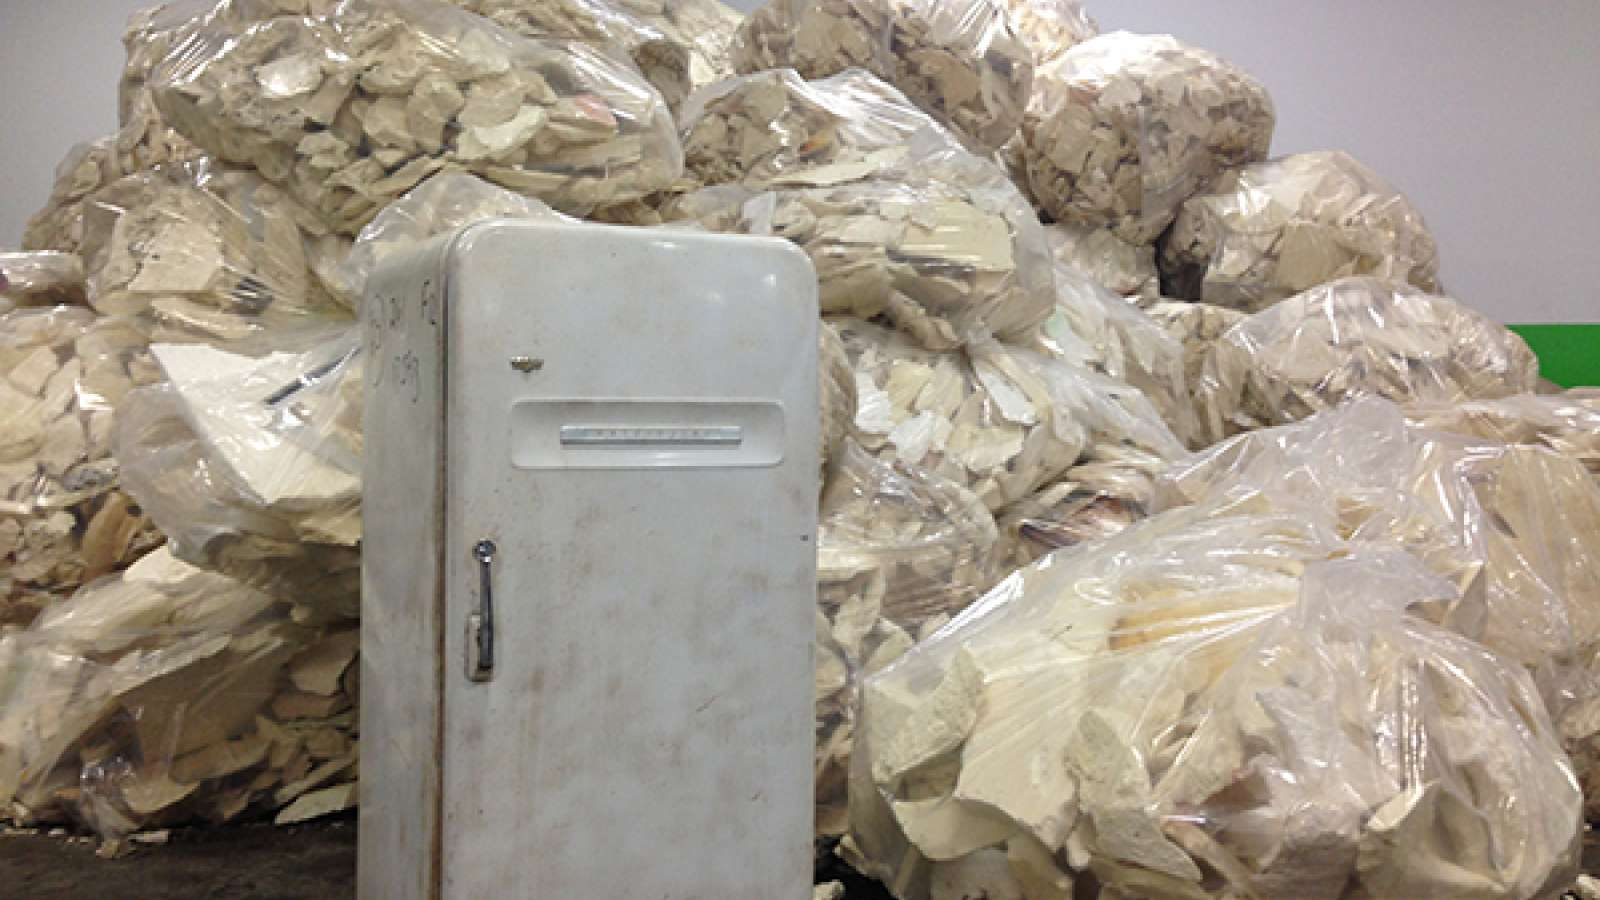 an old refrigerator in front of giant plastic bags of insulation foam